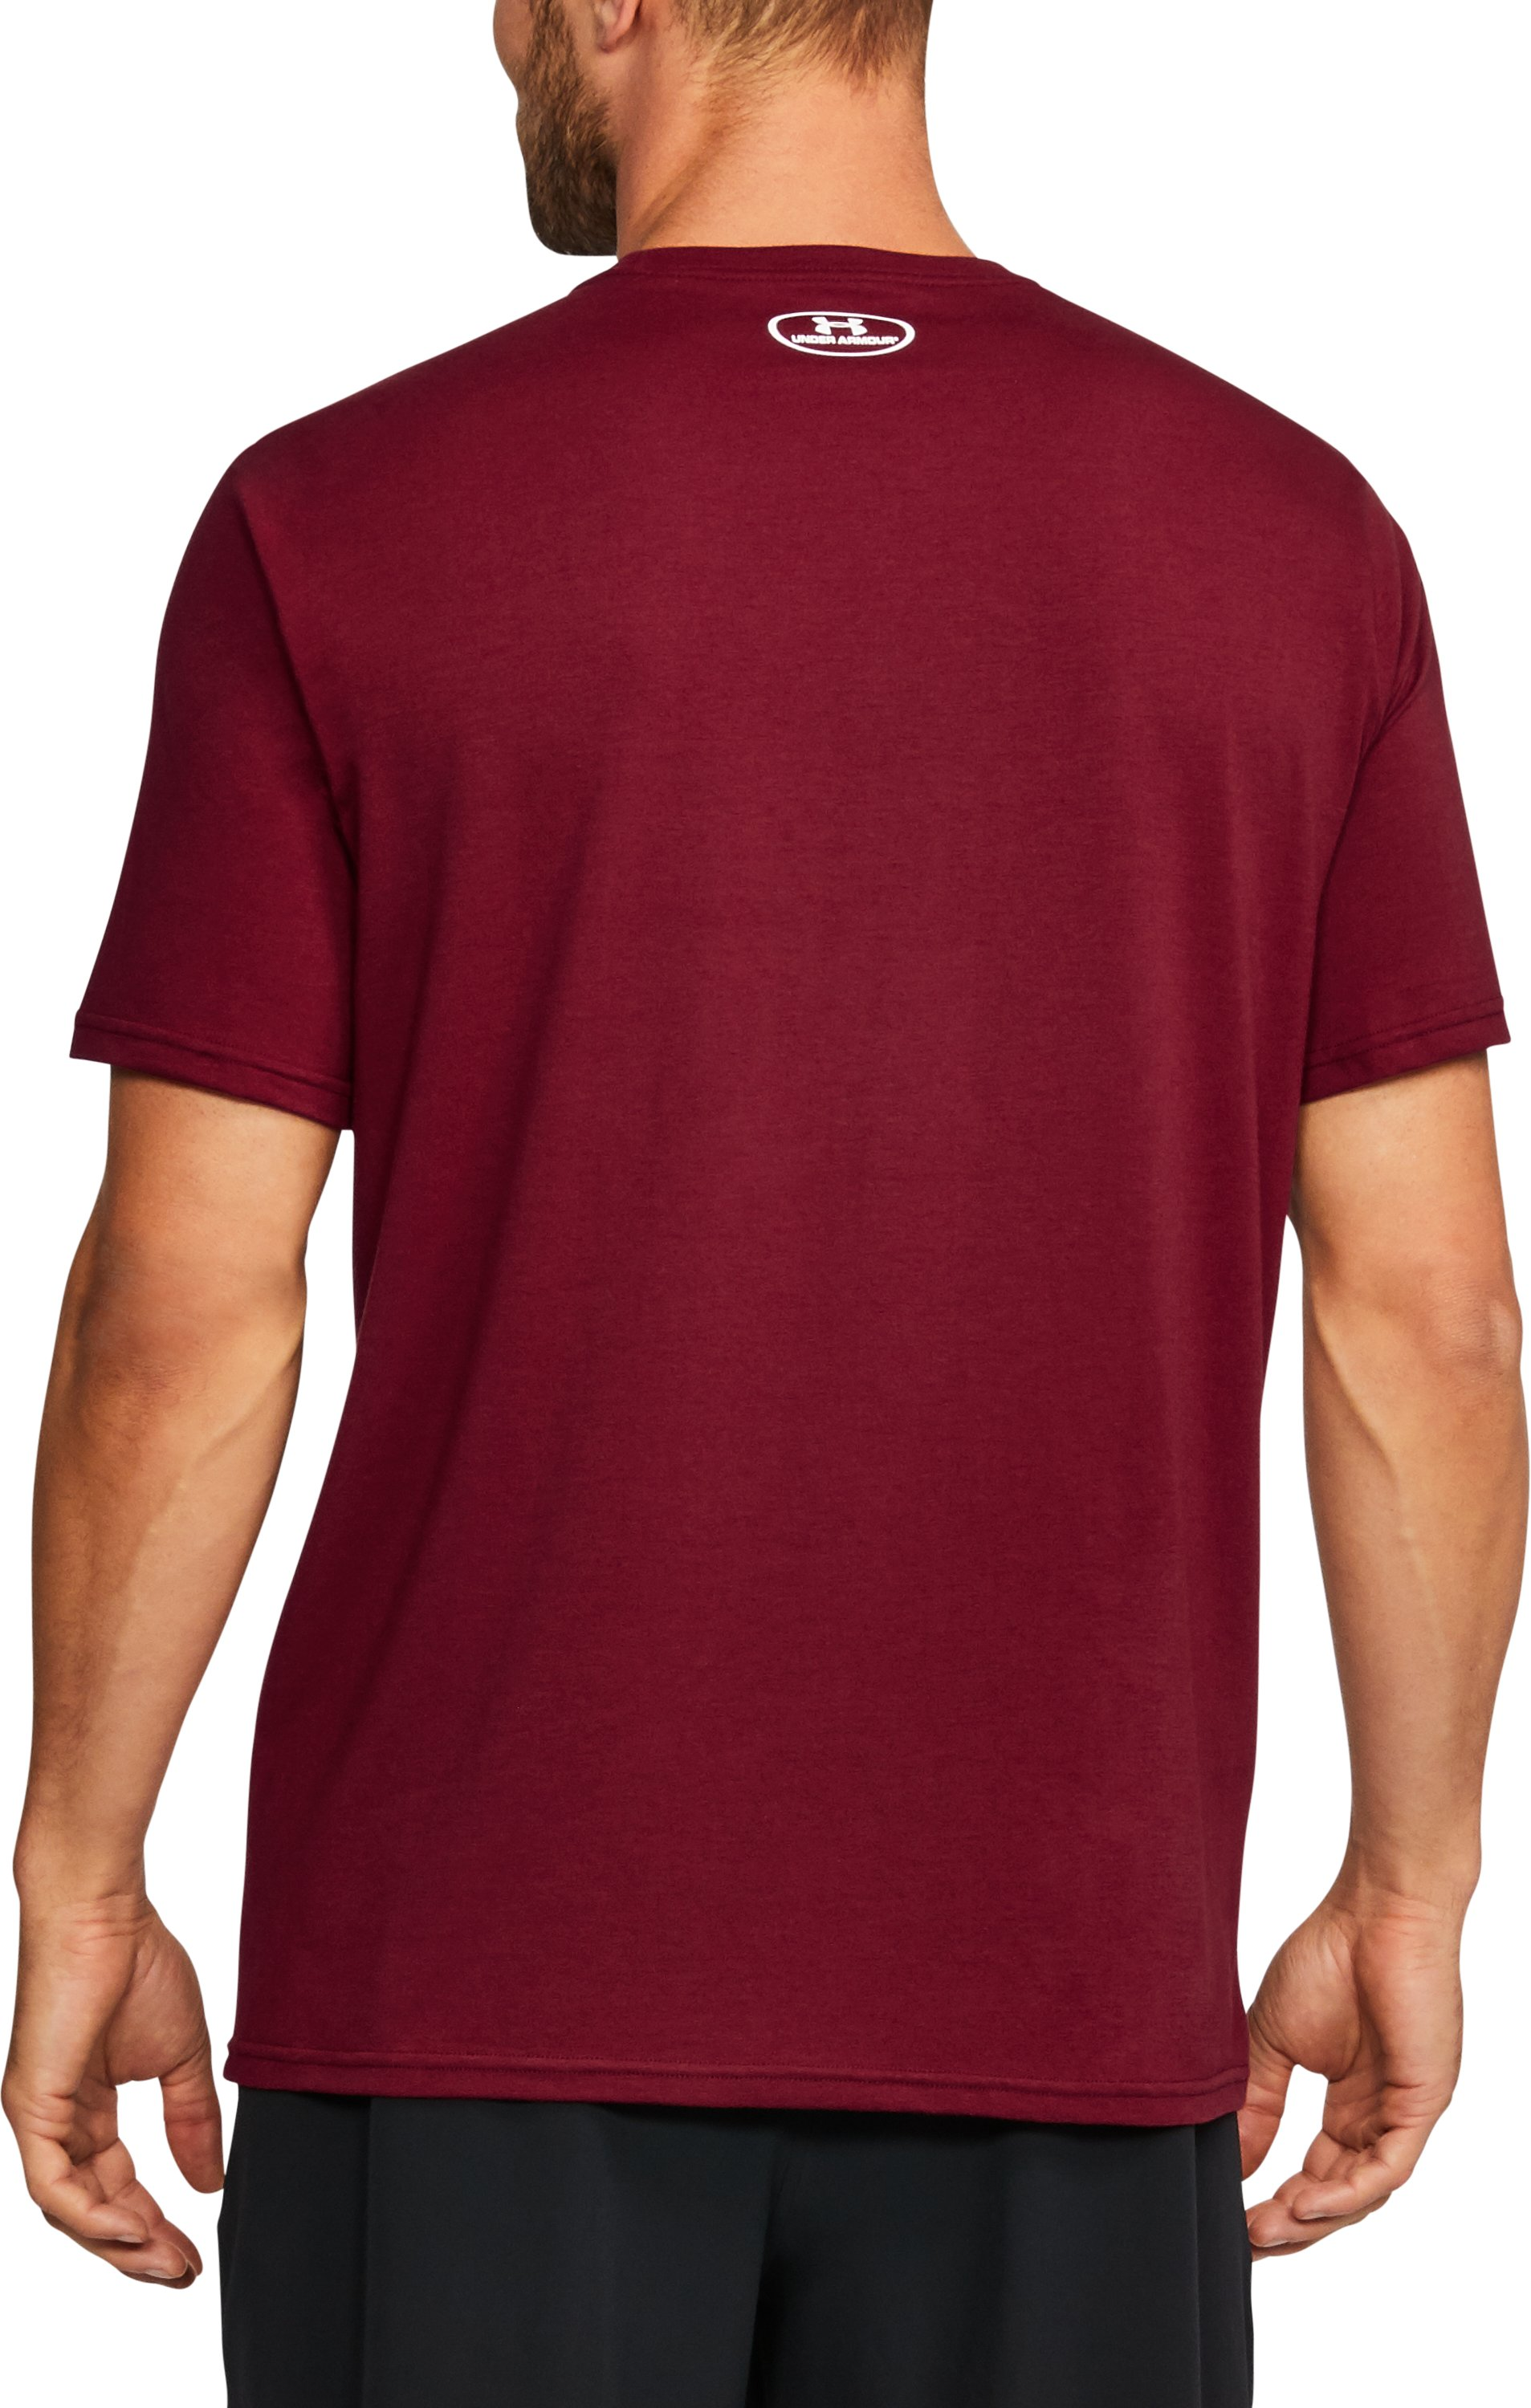 Men's South Carolina Charged Cotton® T-Shirt, Cardinal, undefined